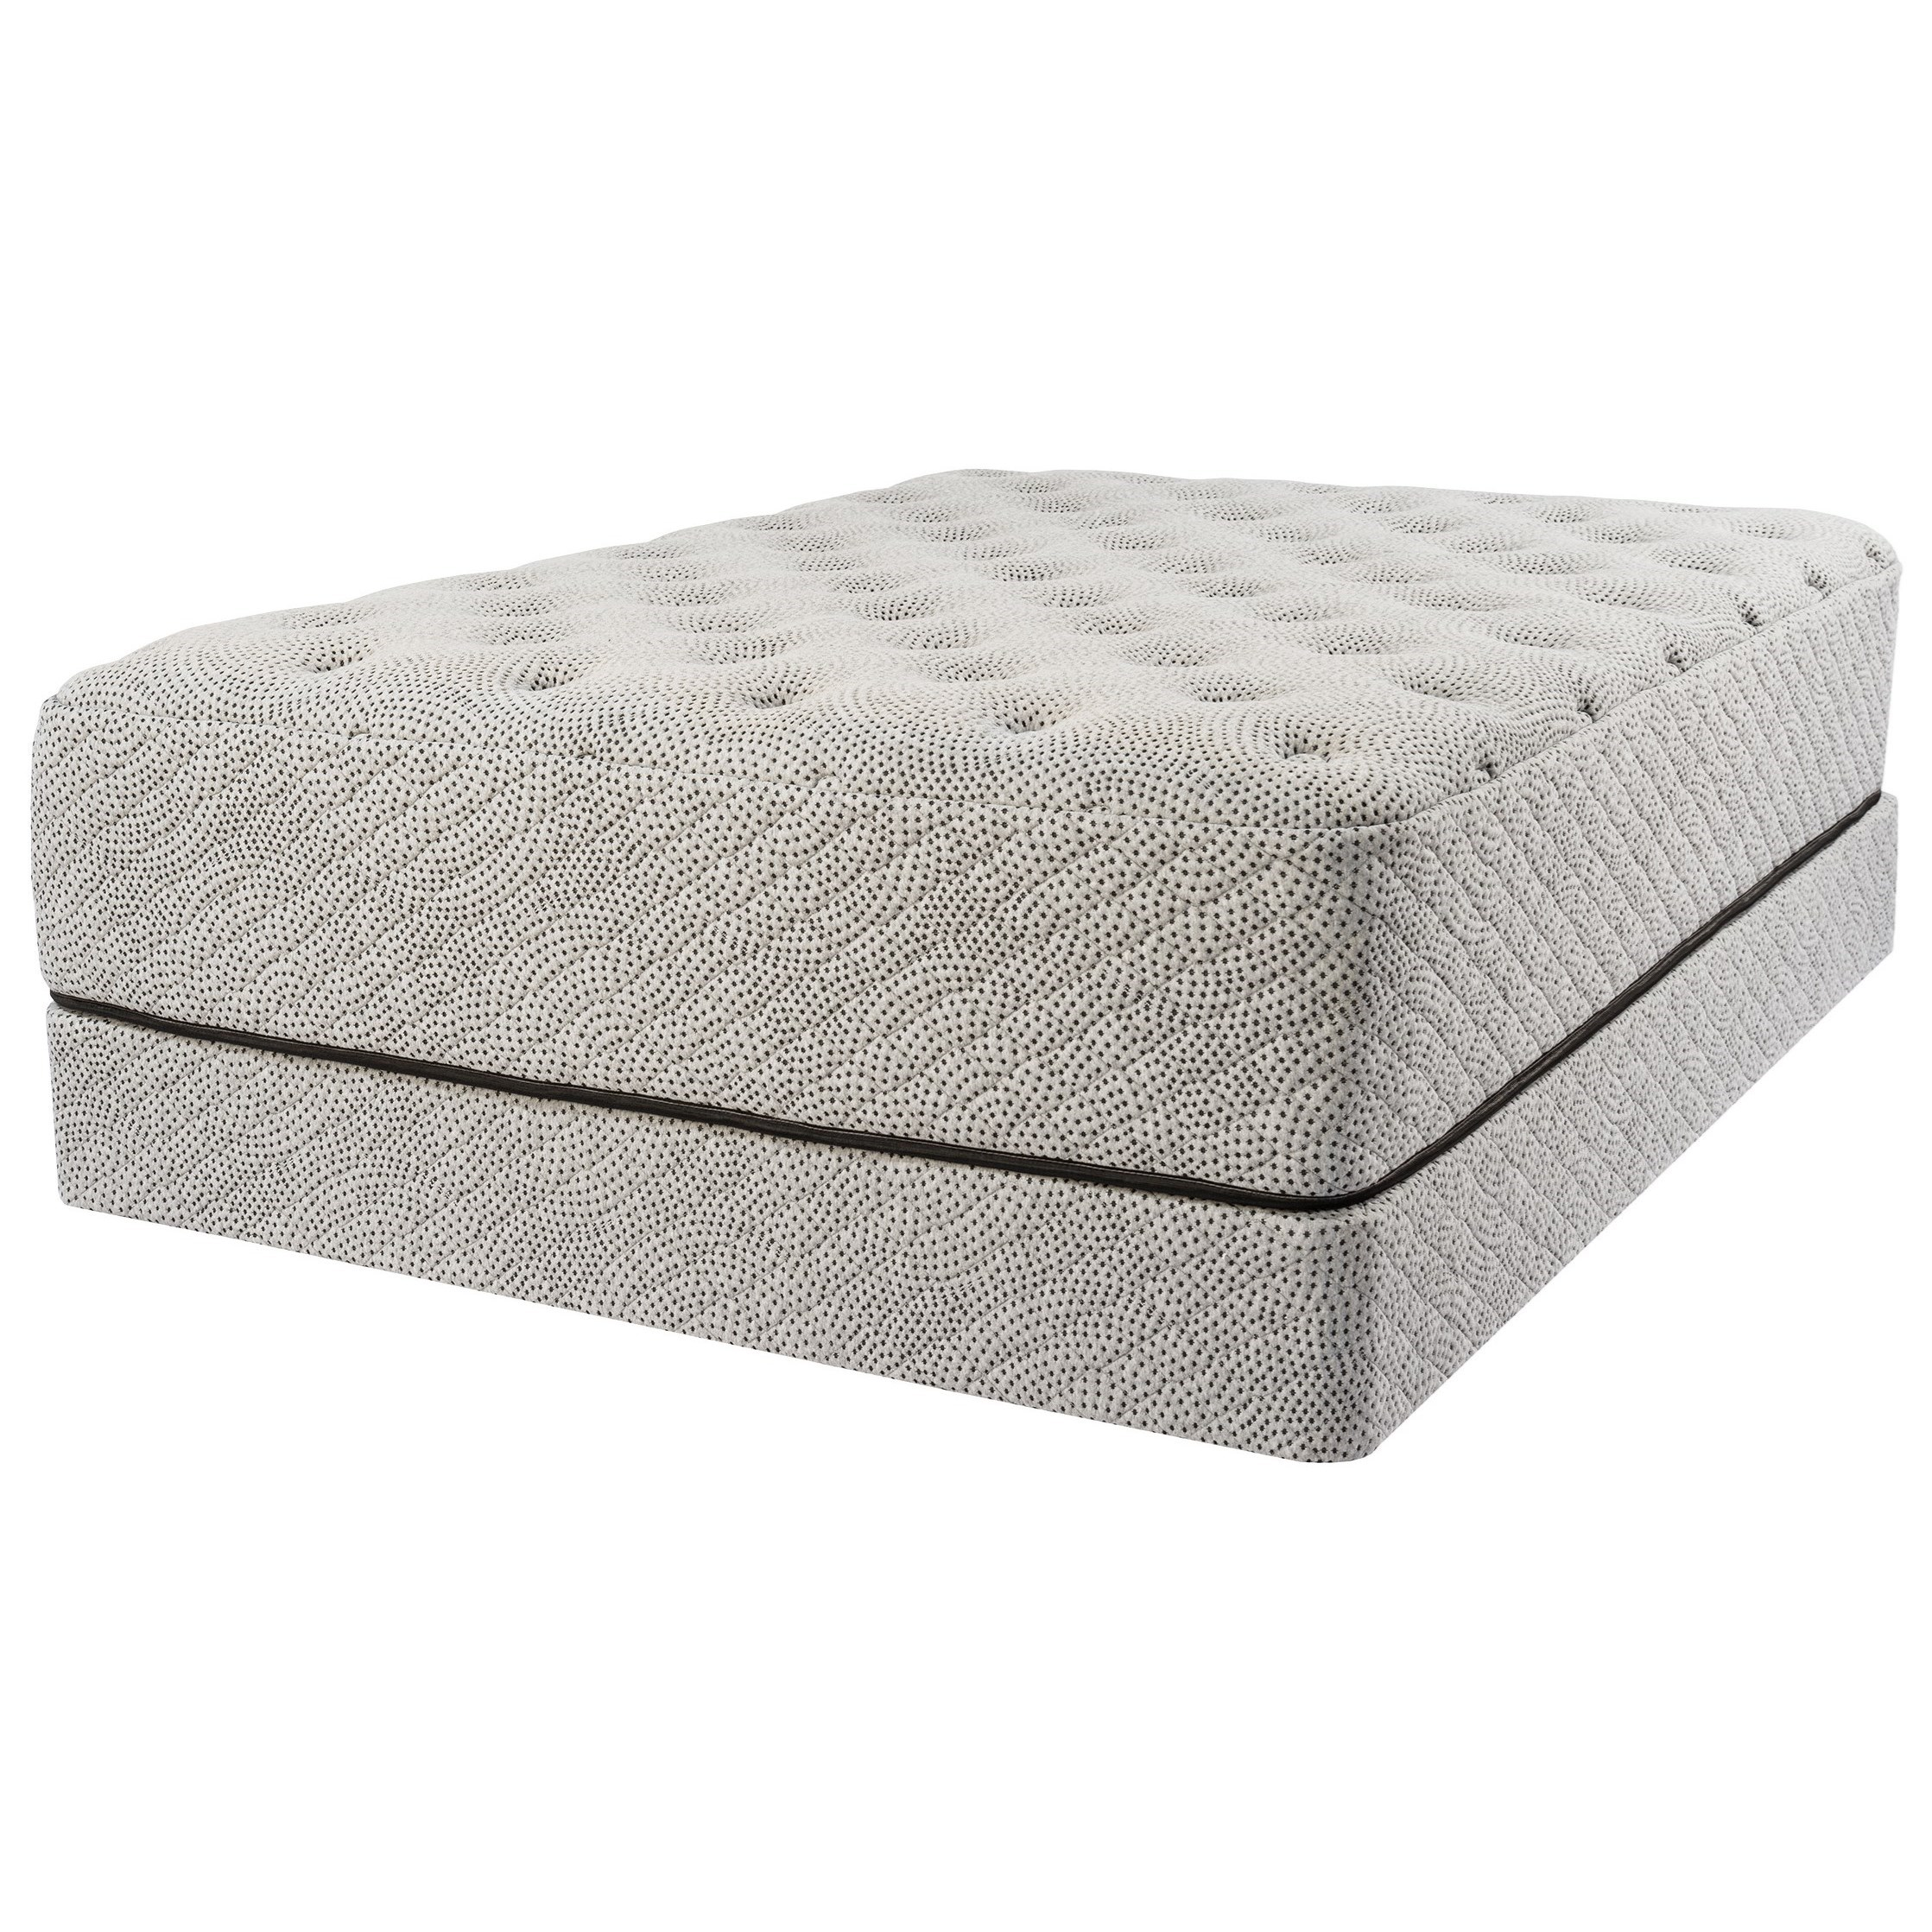 "Milano Cushion Firm Queen 14"" Cushion Firm Mattress Set by Sonnett Sleep at Rotmans"